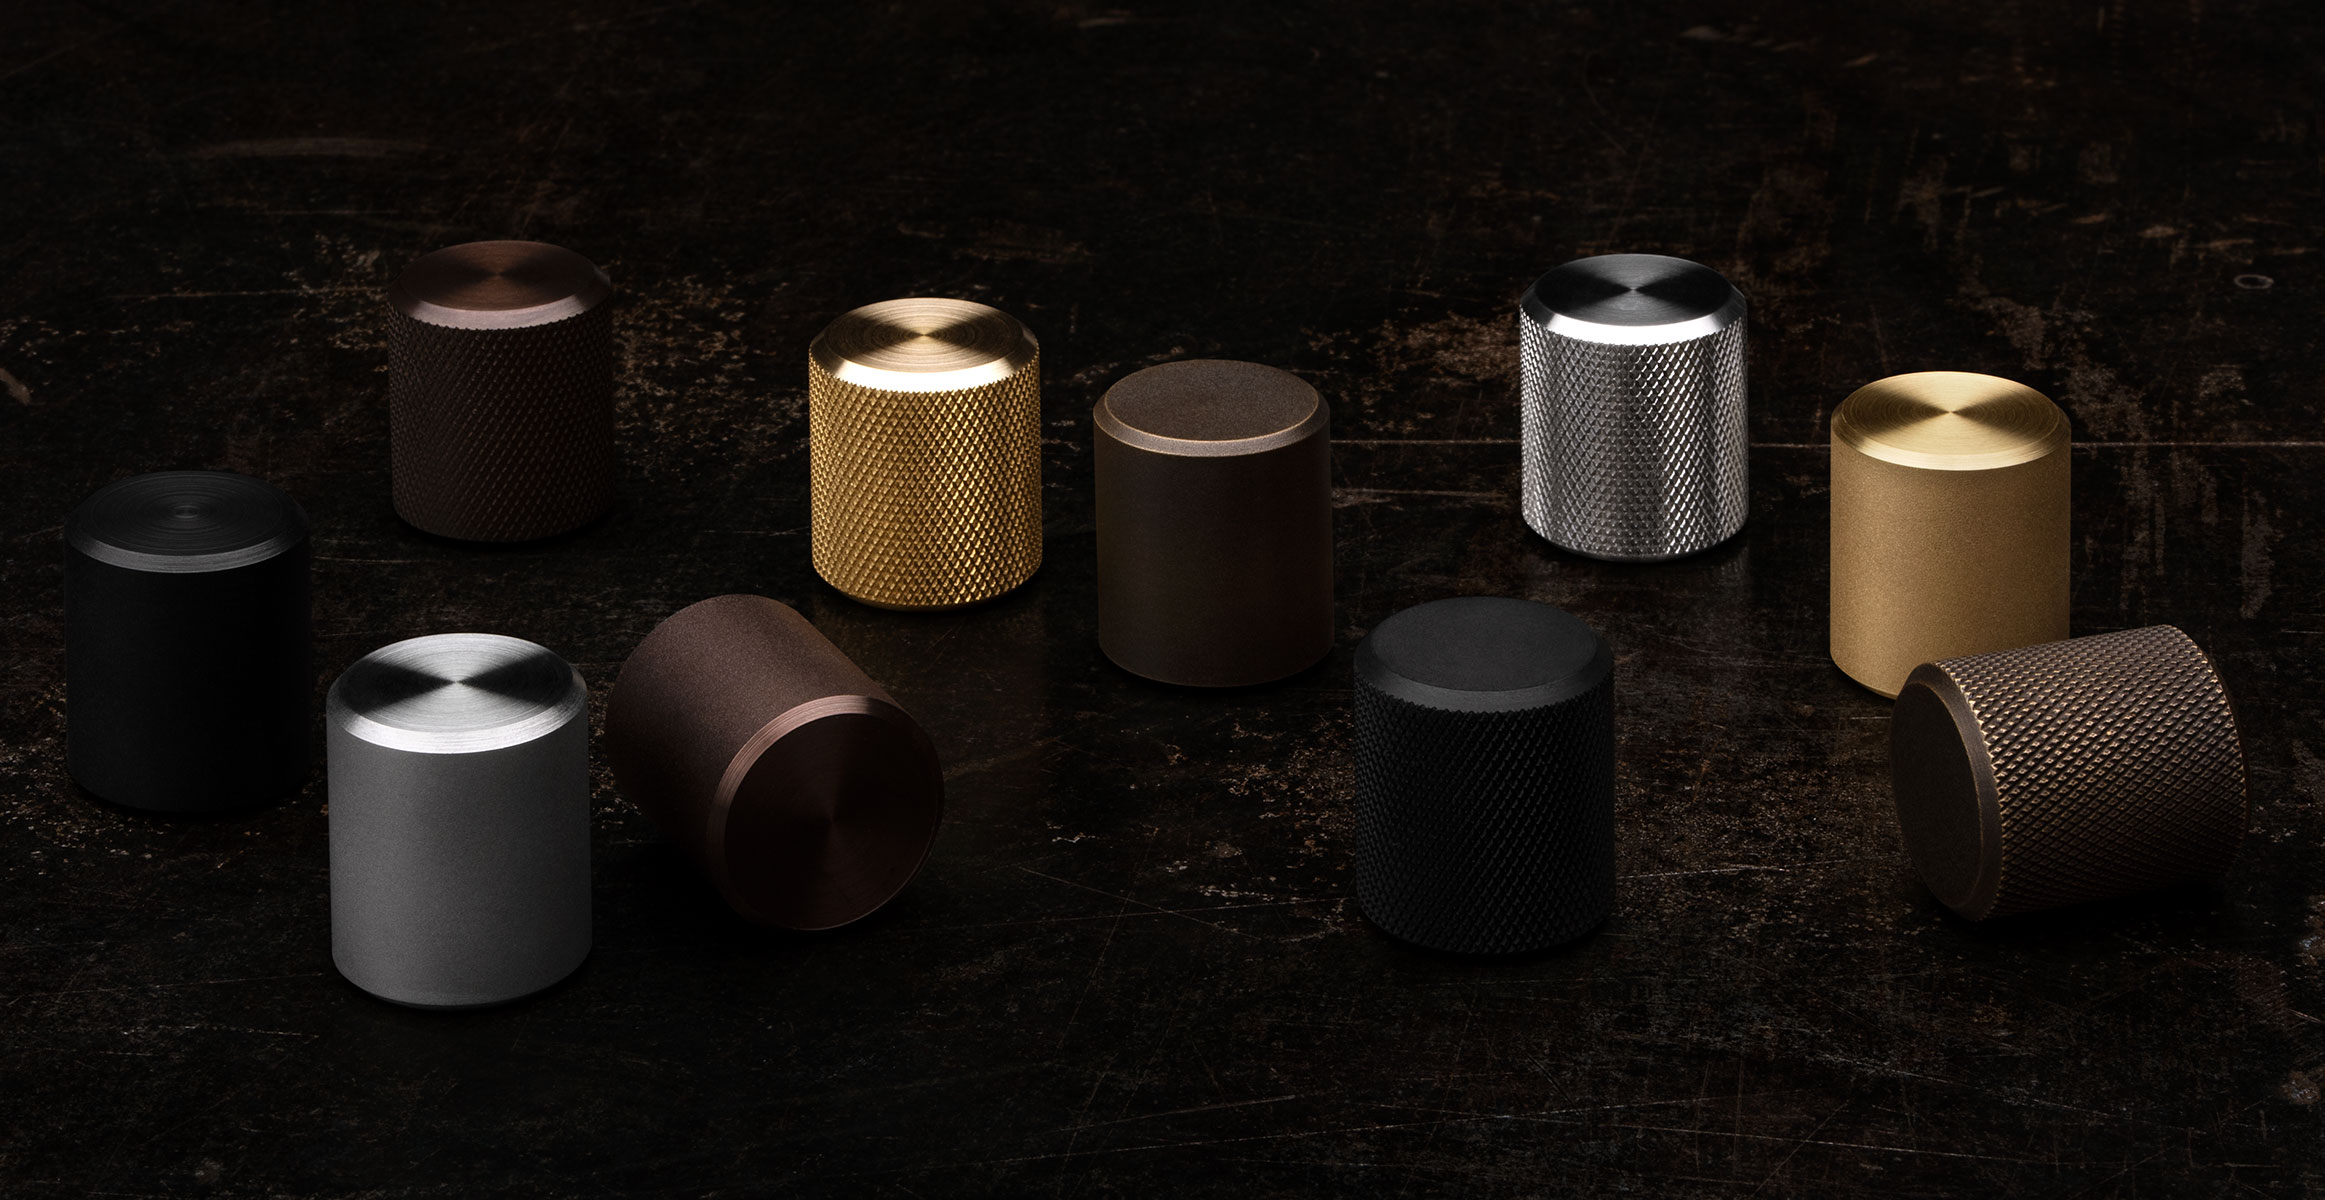 Kor Cabinet Knobs in Black Stainless, Stainless Steel, Oil Rubbed Bronze and Brass